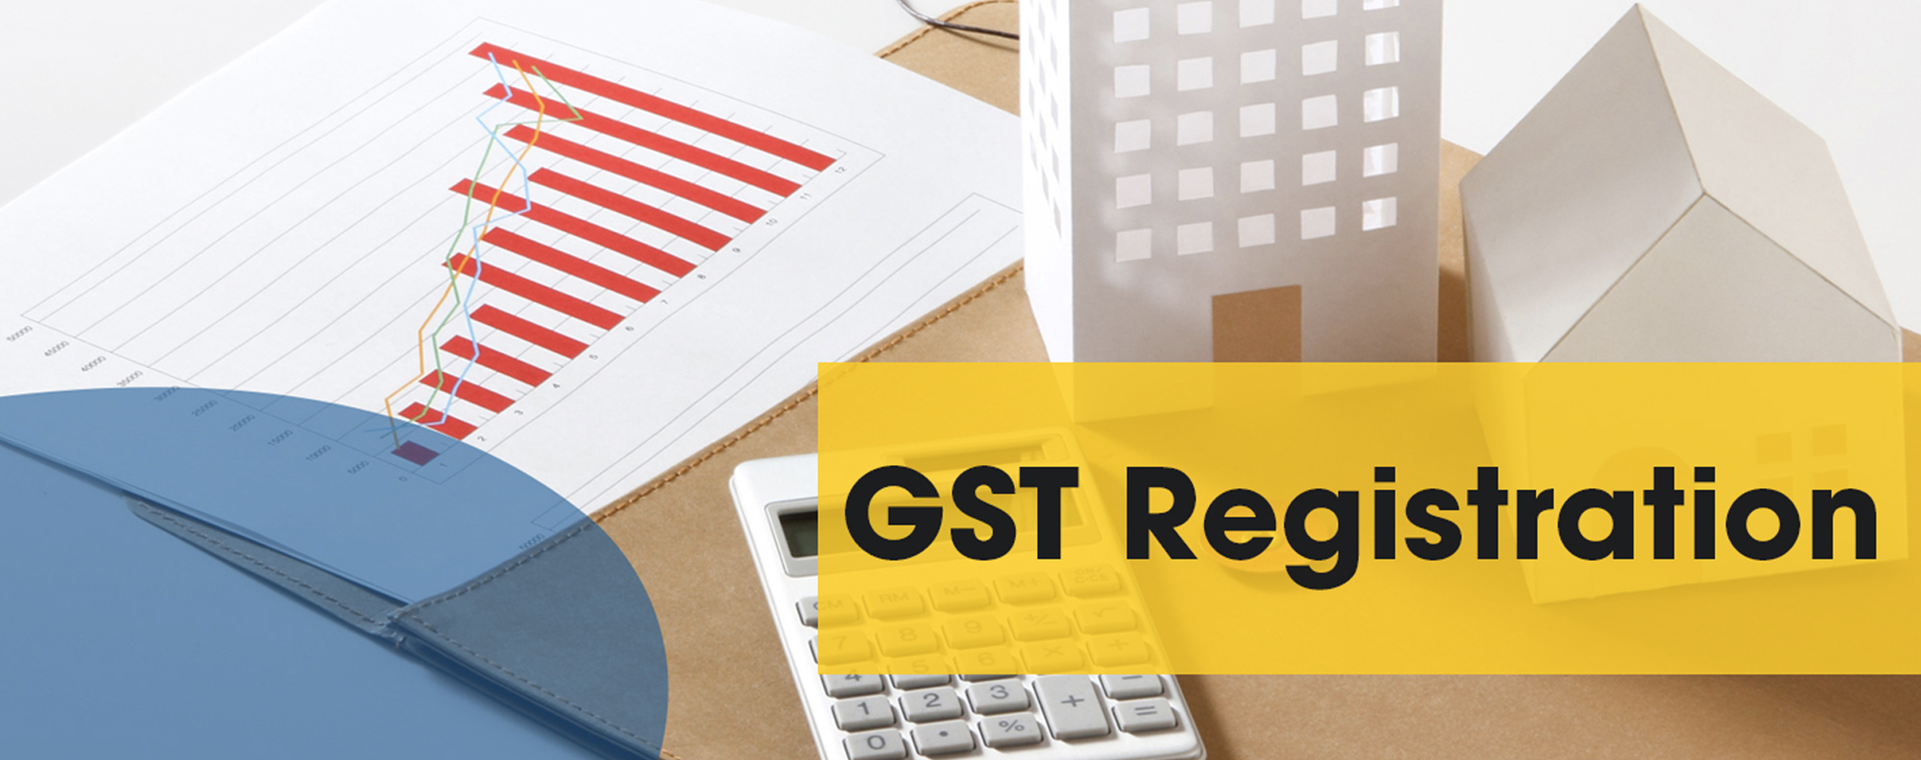 GST Registration and What are It's Penalties